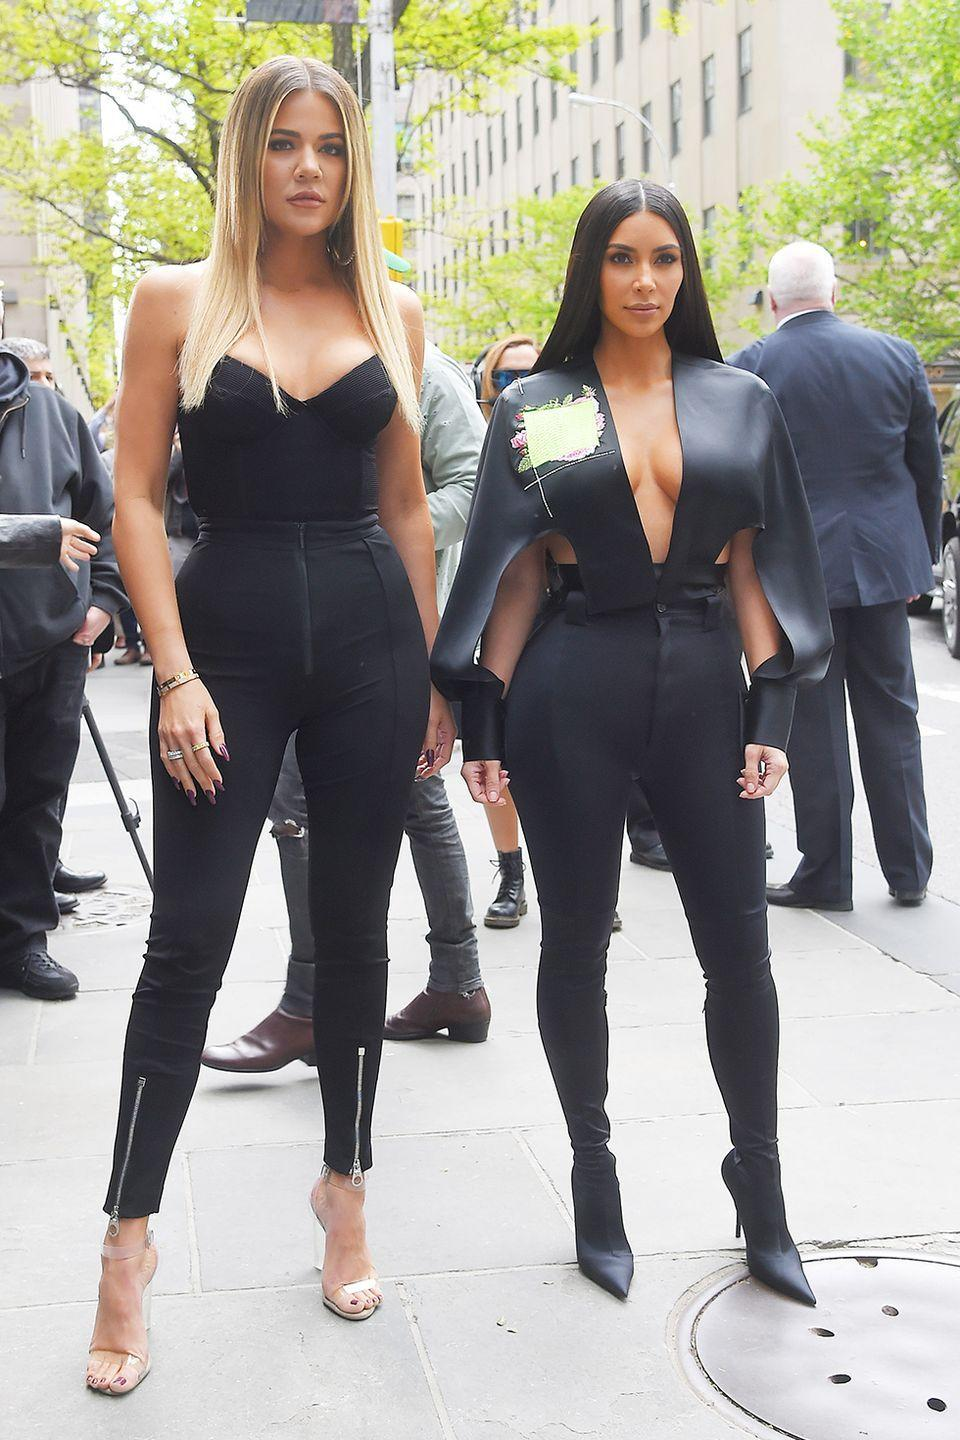 """<p>Khloe told <em> <a href=""""https://people.com/celebrity/khloe-kardashian-diet-plan/what-she-cut/"""" rel=""""nofollow noopener"""" target=""""_blank"""" data-ylk=""""slk:People"""" class=""""link rapid-noclick-resp"""">People</a> </em>that cutting out dairy—especially cheese—helped her lose 40 pounds. </p><p>But FYI: Nixing cheese <a href=""""https://www.womenshealthmag.com/weight-loss/a19967736/is-dairy-bad-for-you/"""" rel=""""nofollow noopener"""" target=""""_blank"""" data-ylk=""""slk:won't work for everyone"""" class=""""link rapid-noclick-resp"""">won't work for everyone</a>. (It could help you <a href=""""https://www.womenshealthmag.com/food/a21641590/cut-dairy-for-acne/"""" rel=""""nofollow noopener"""" target=""""_blank"""" data-ylk=""""slk:get rid of acne"""" class=""""link rapid-noclick-resp"""">get rid of acne</a>, though!)</p>"""